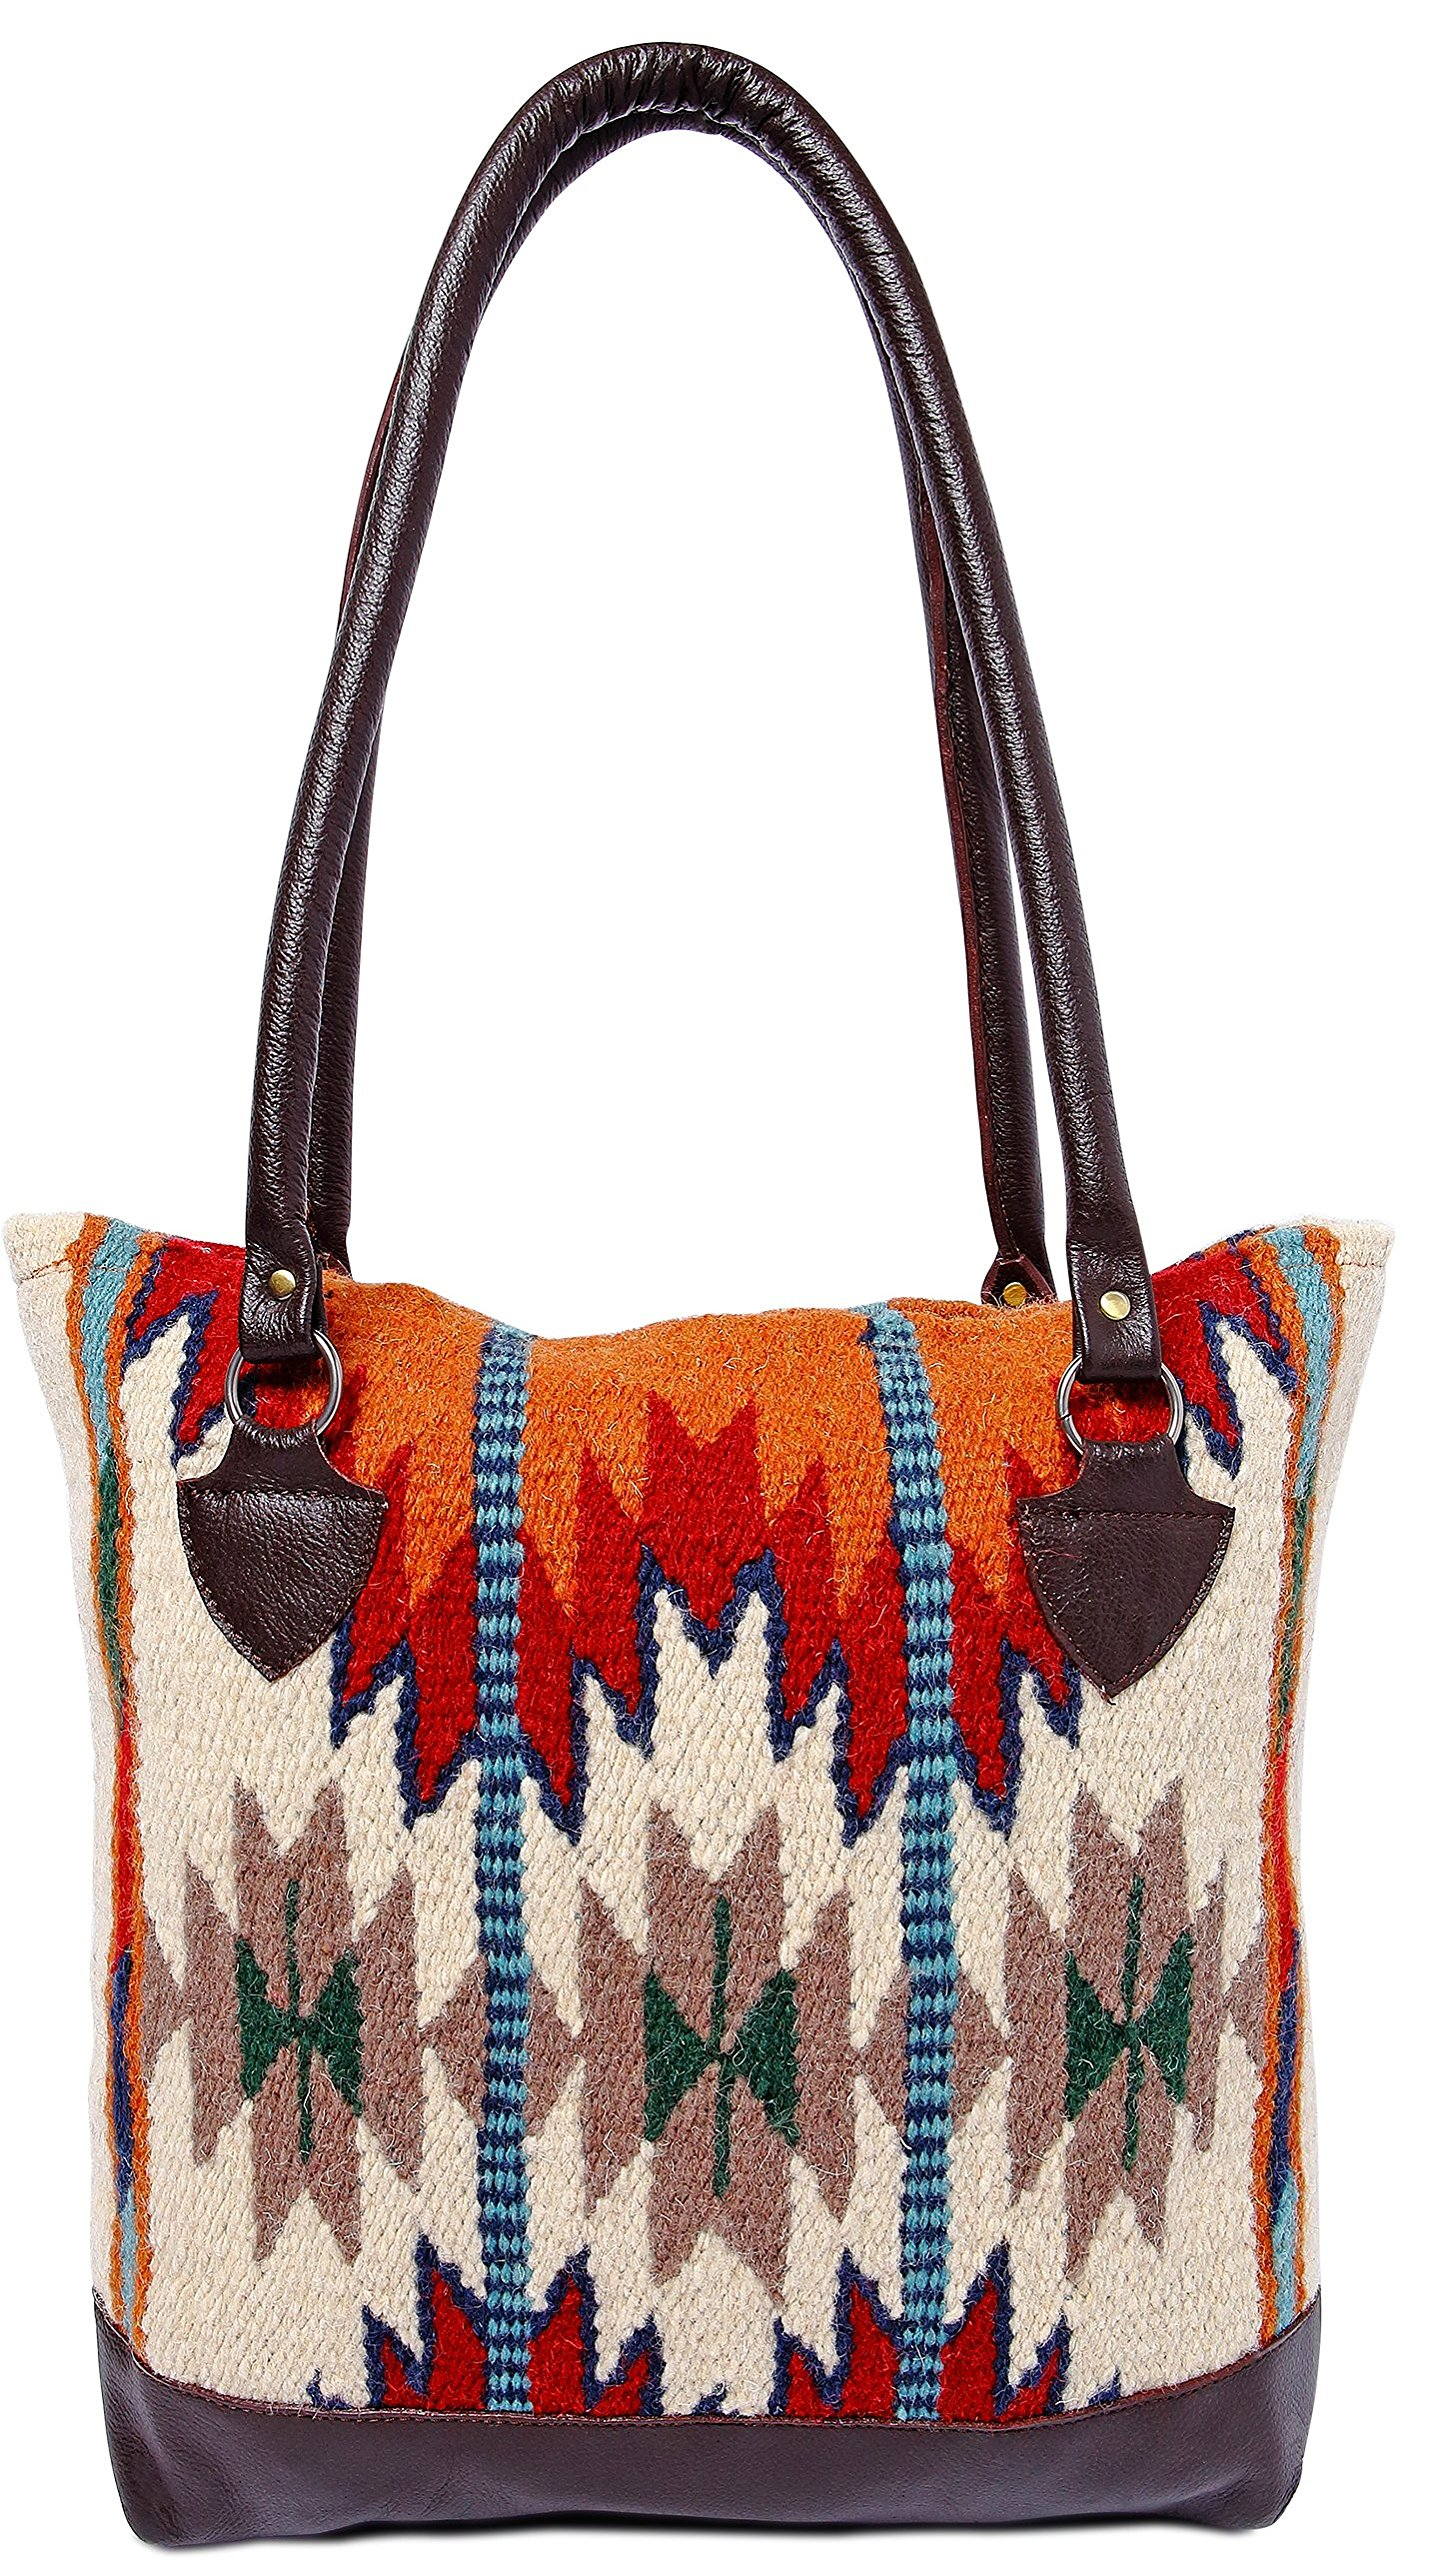 Genuine Leather Large Eco Friendly Tote Bag, Native American Styles on Hand-Woven Wool (Earth Dancer)